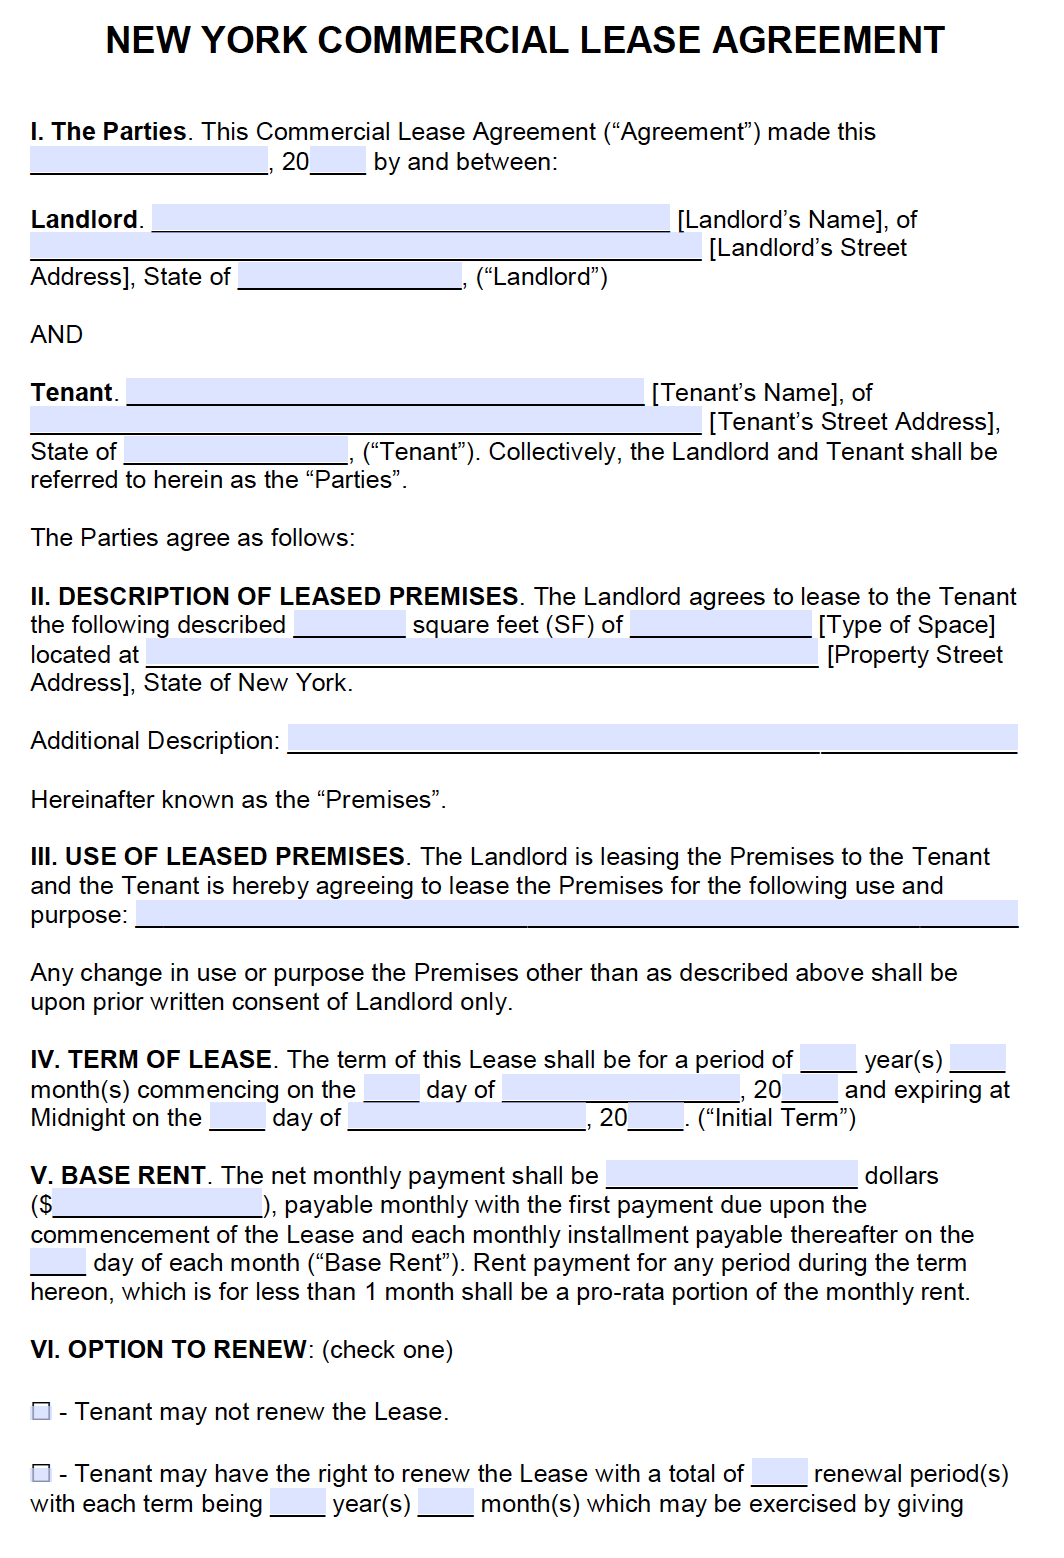 printable rental lease agreement form for free  Free New York Commercial Lease Agreement – PDF – Word - printable rental lease agreement form for free